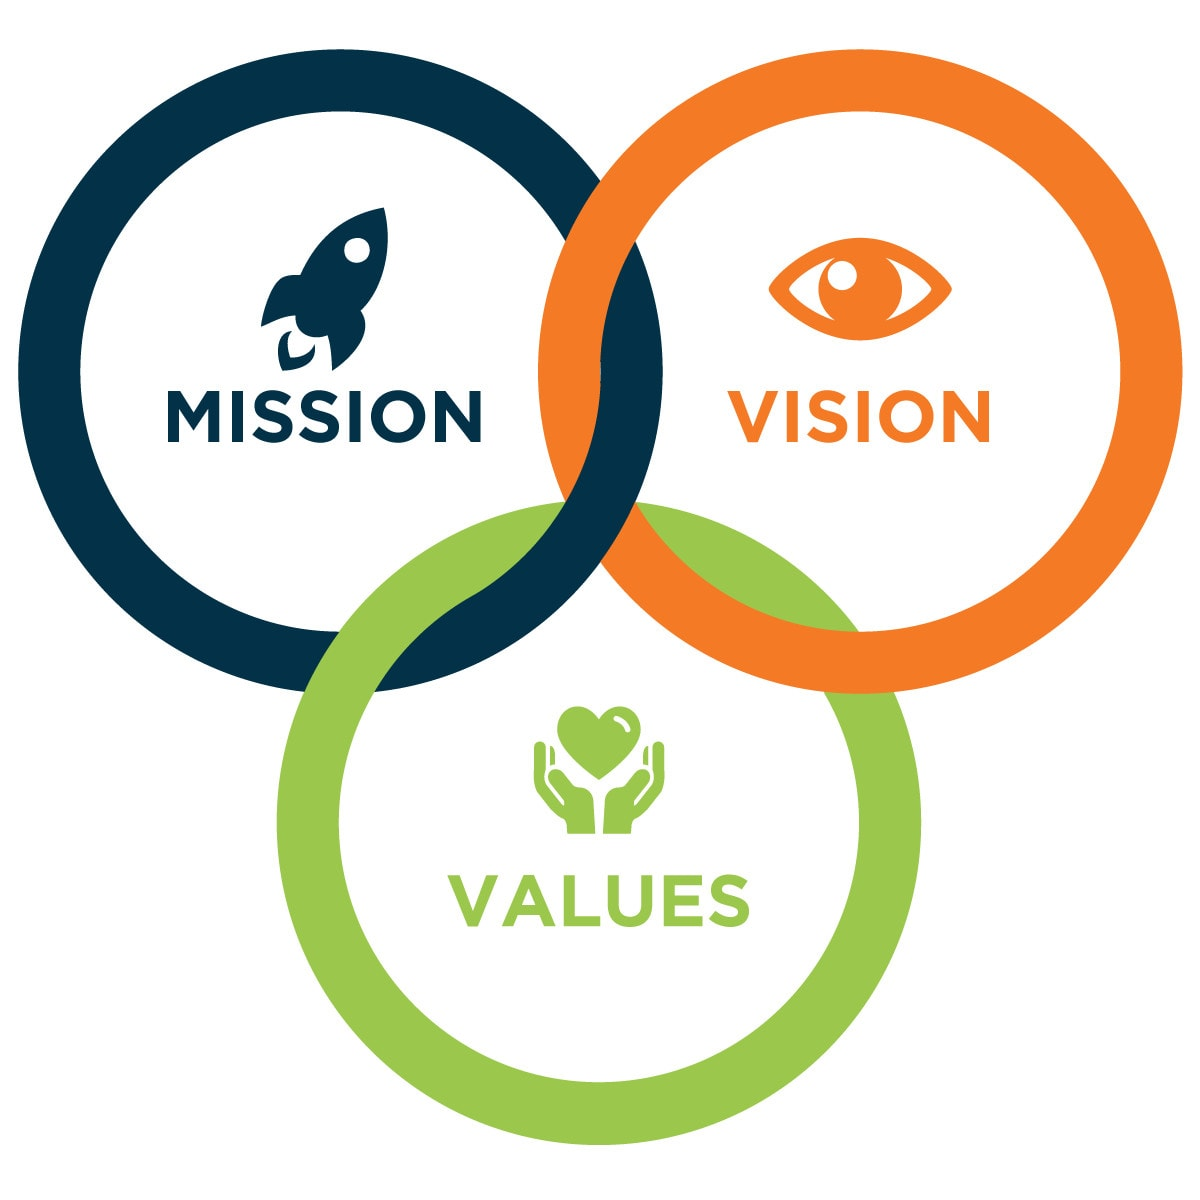 Articulate your vision in a compelling manner by Nadasamar | Fiverr